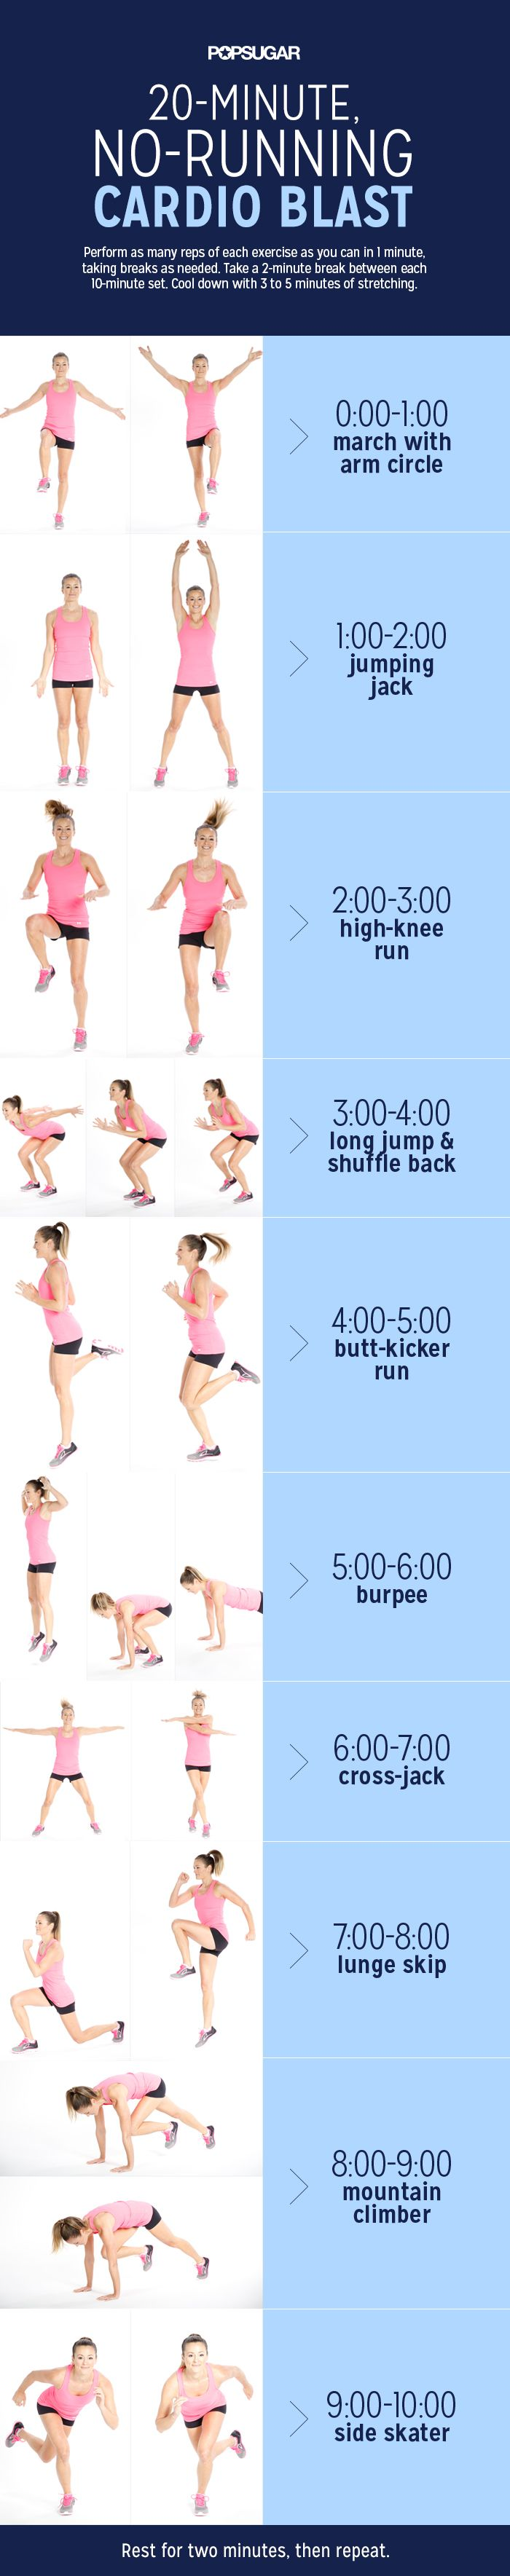 No matter where you are, get fit with this 20-minute, no equipment workout.